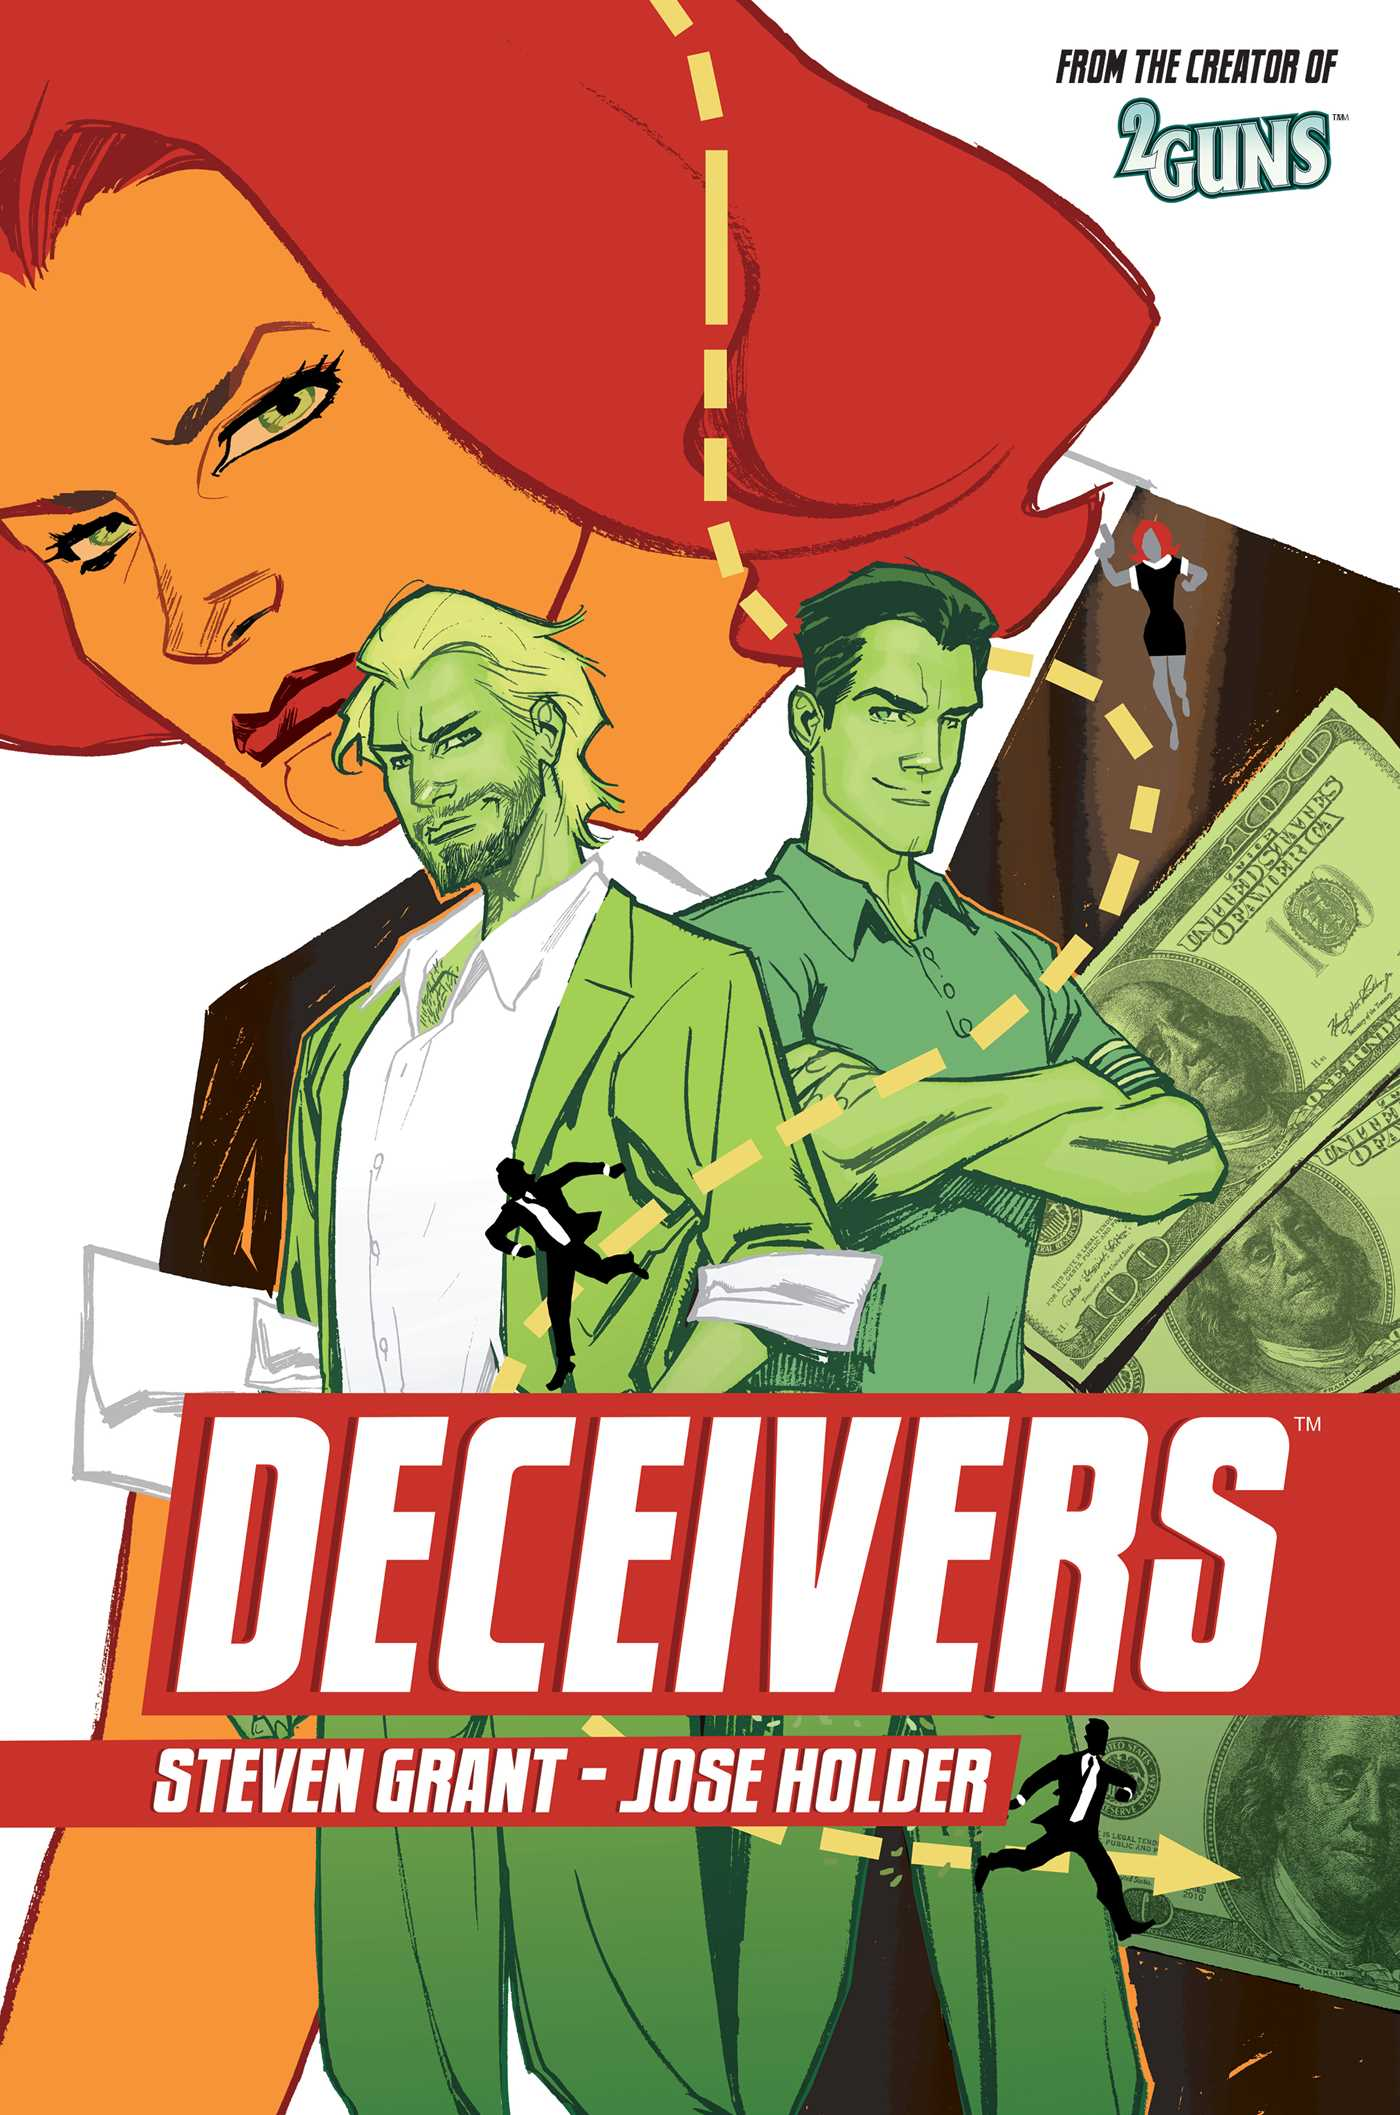 Deceivers 9781608864362 hr